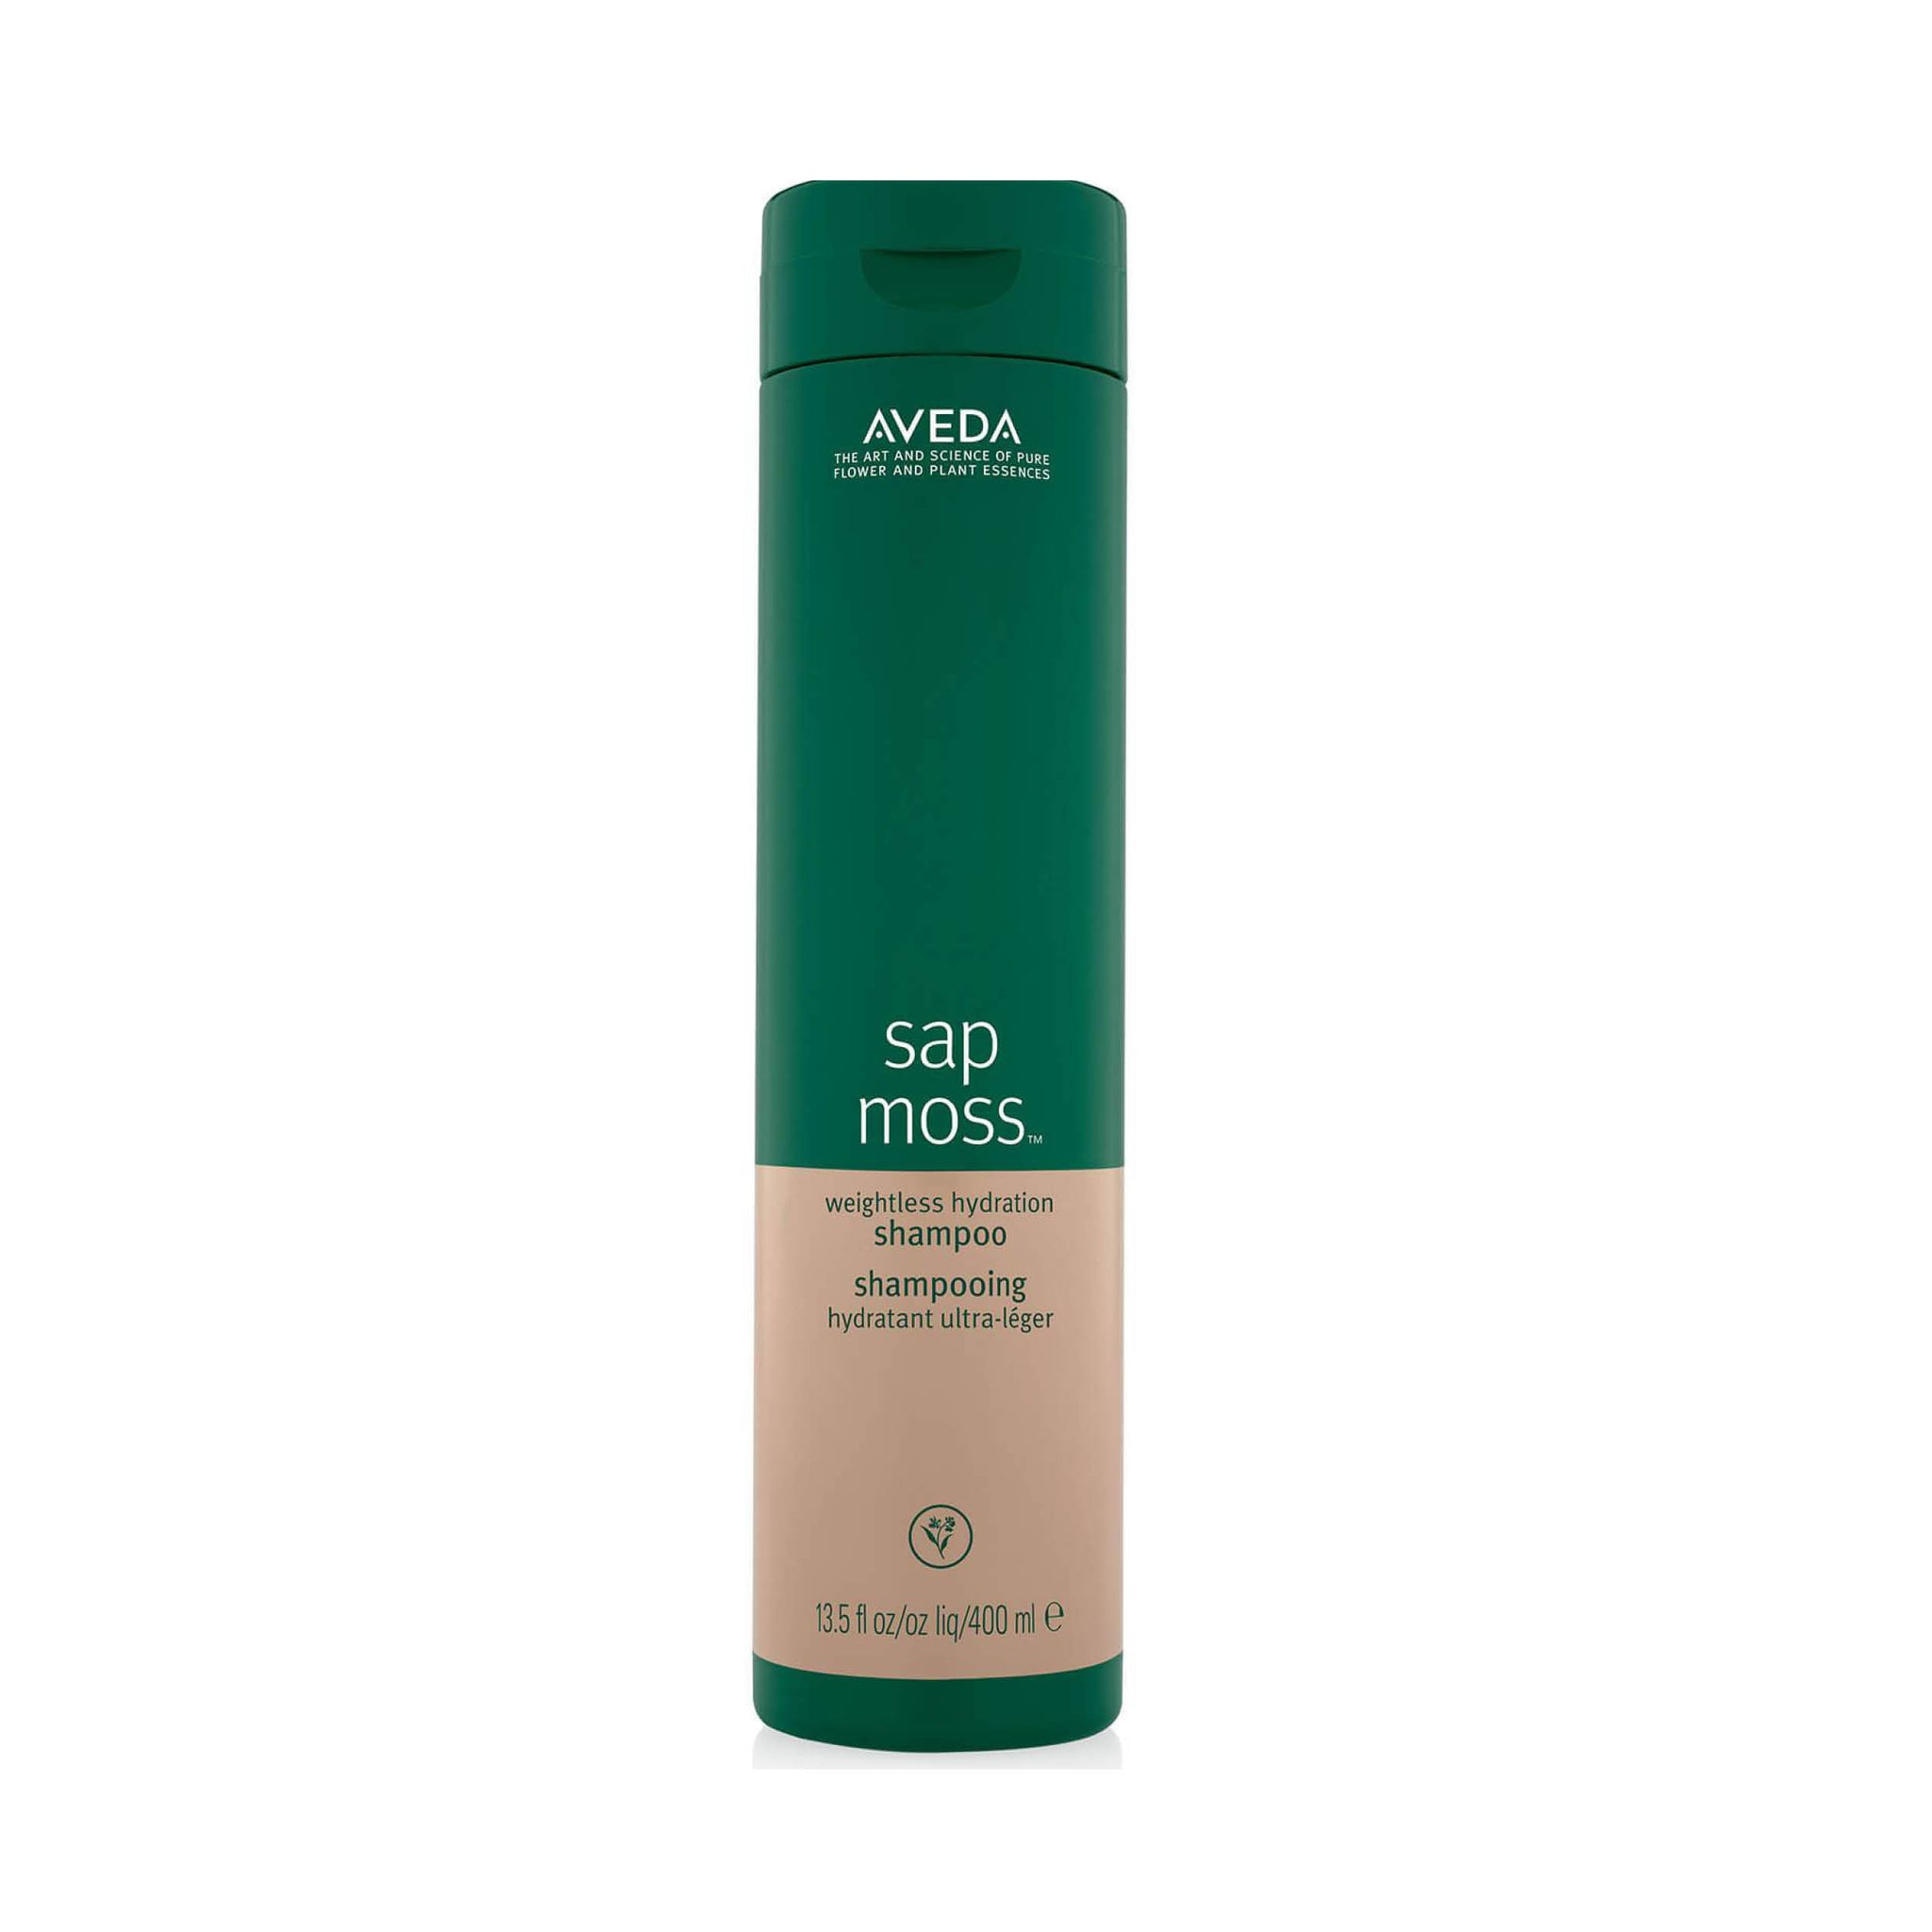 AVEDA Sap Moss Weightless Hydration Shampoo 400ml